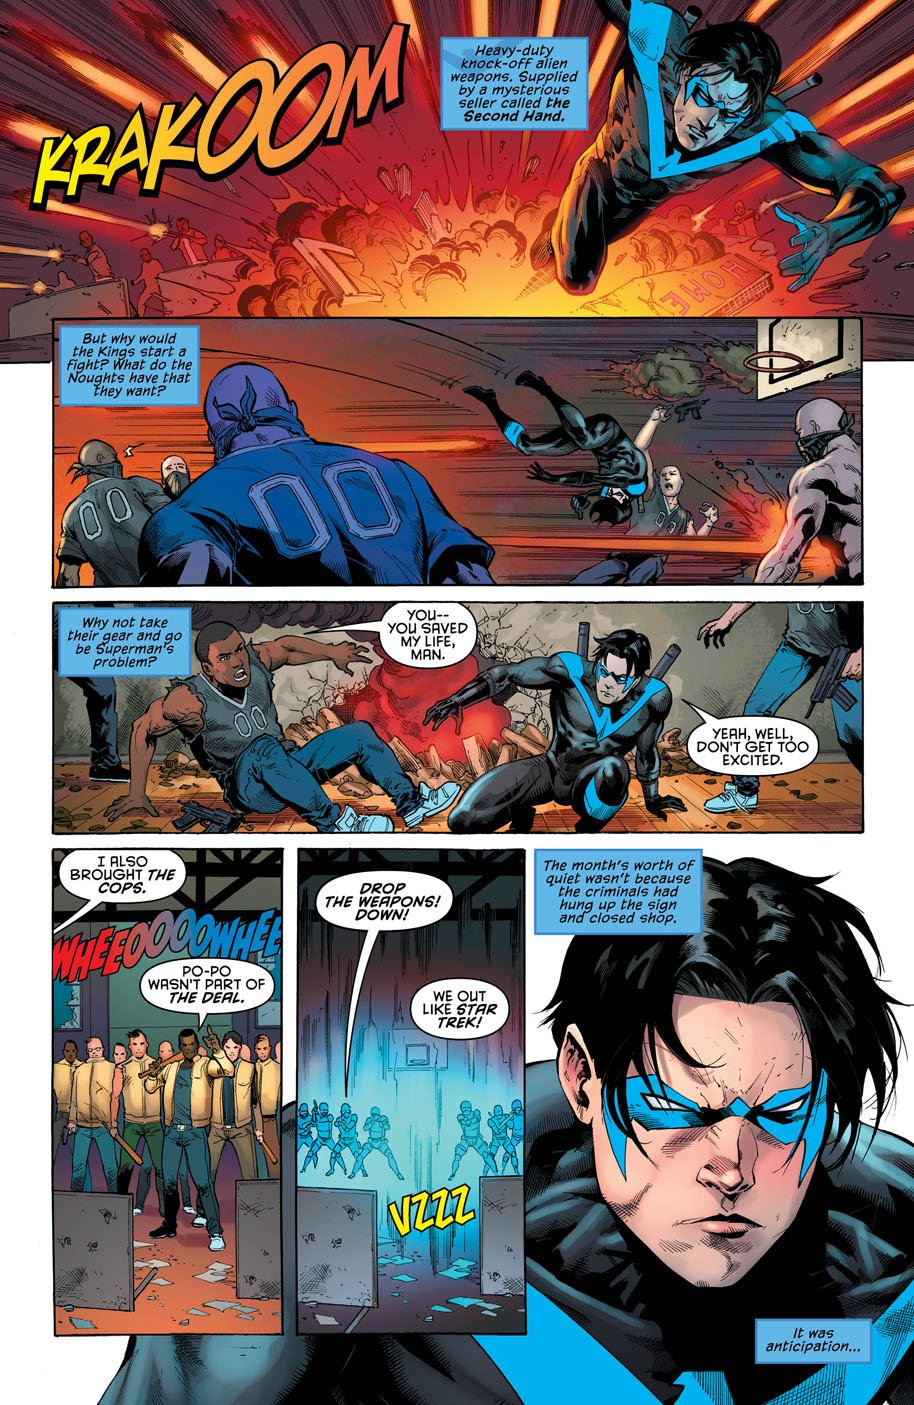 Nightwing 22 page 5